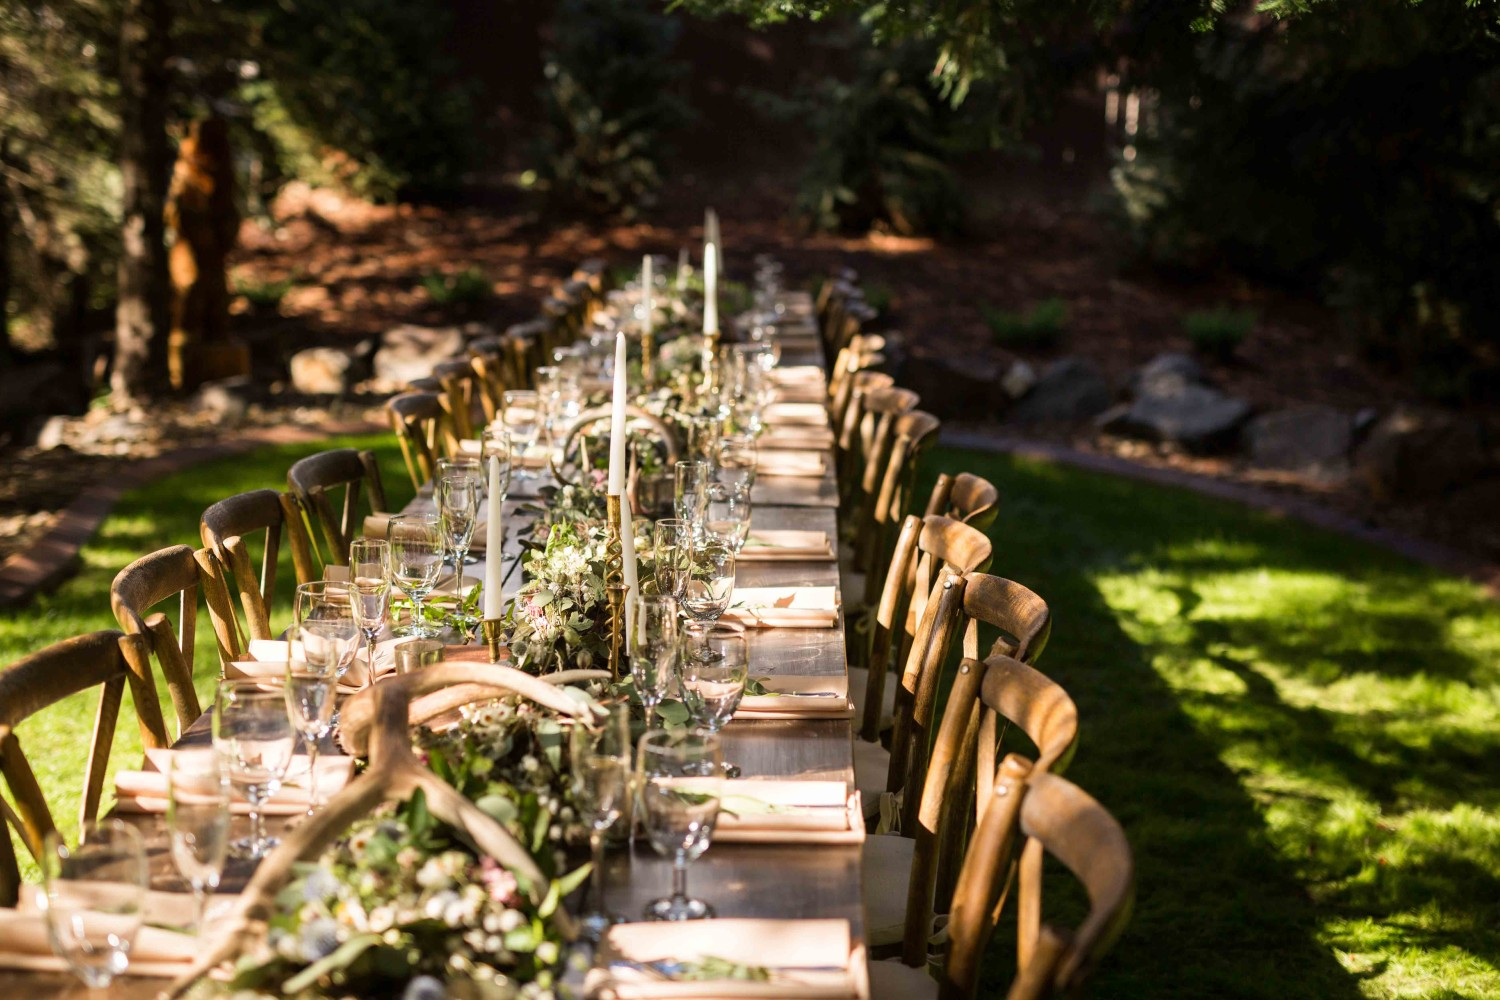 Backyard DIY wedding table setup with antlers, candles and more.